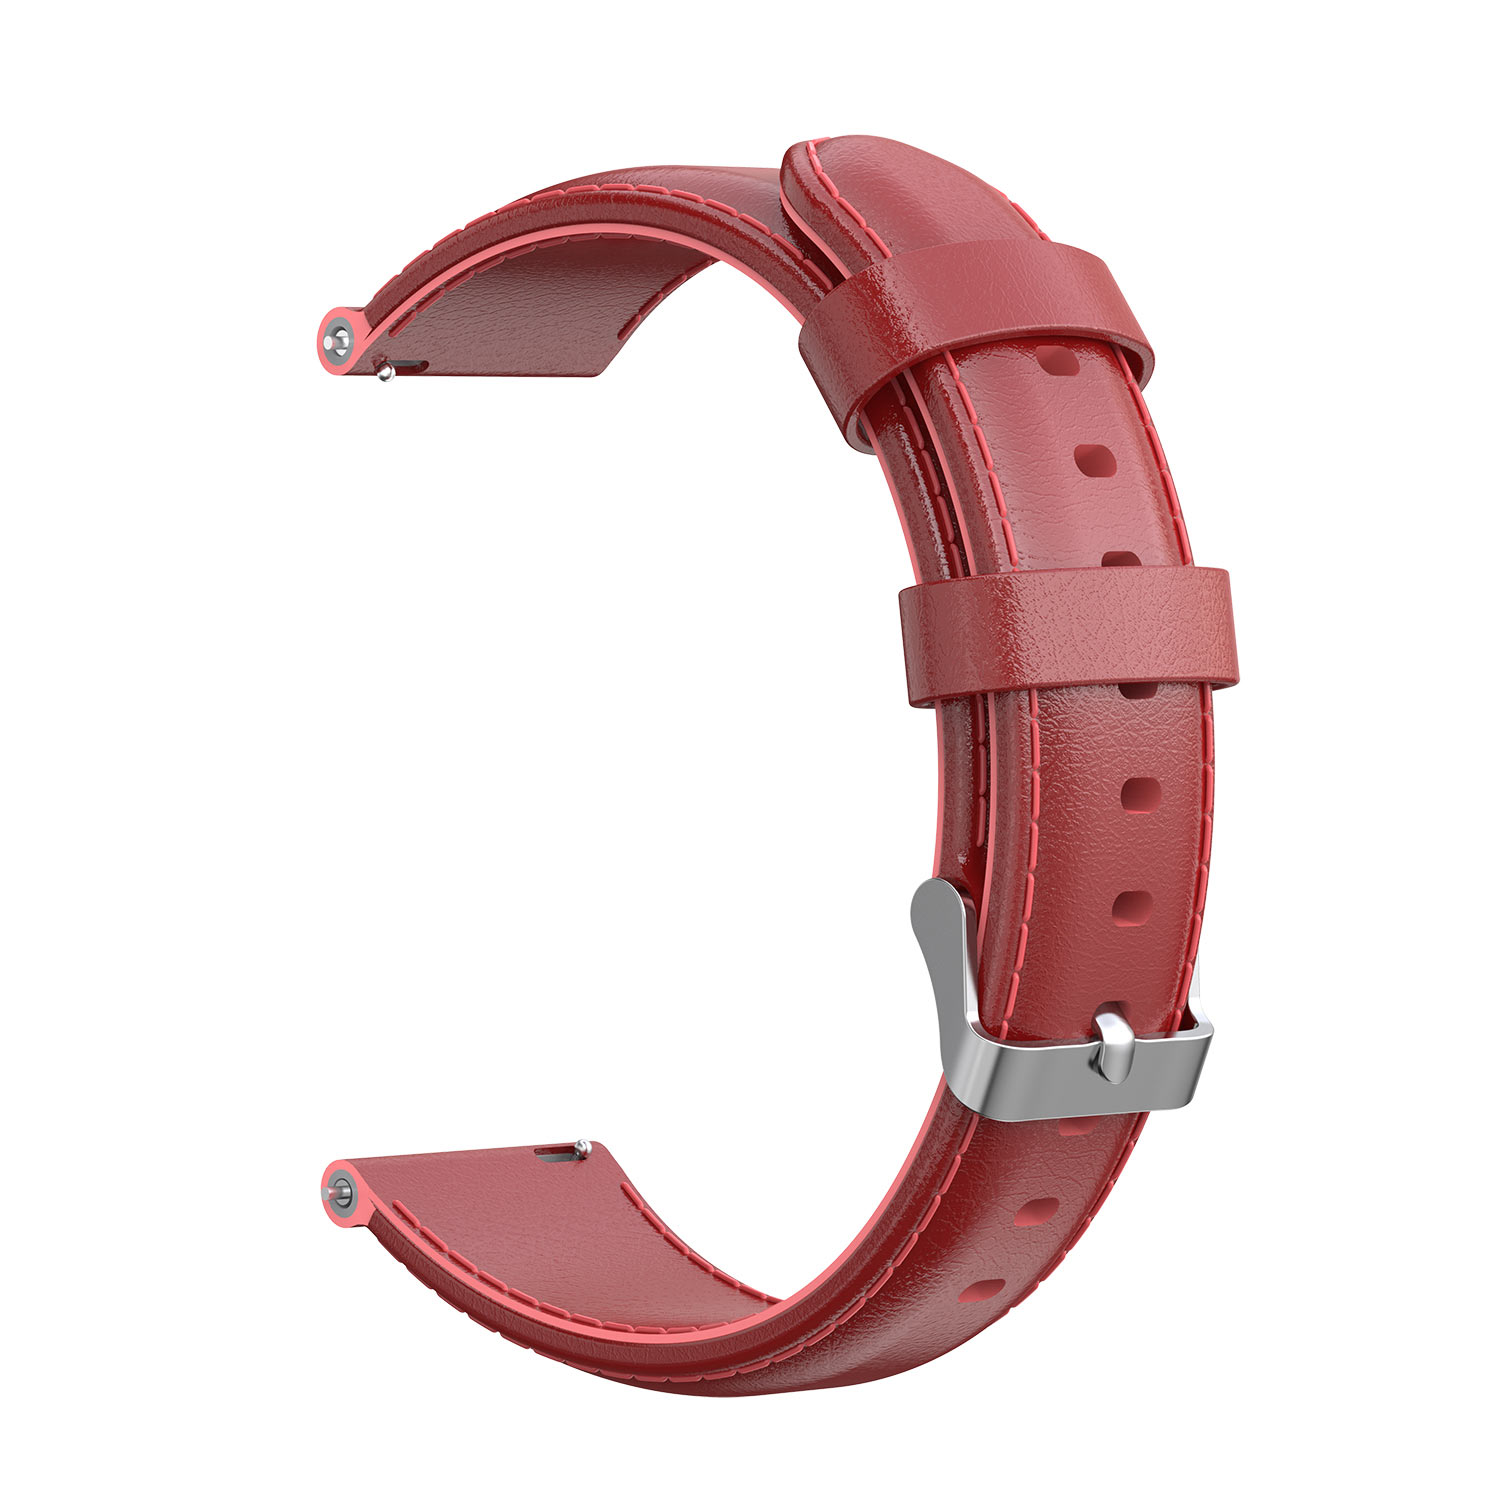 Mijobs Leather Strap for Sunnto Baro Smart Watch Genuine Leather Watchband Replacement Wrist Strap for Sunnto Baro Accessories in Smart Accessories from Consumer Electronics